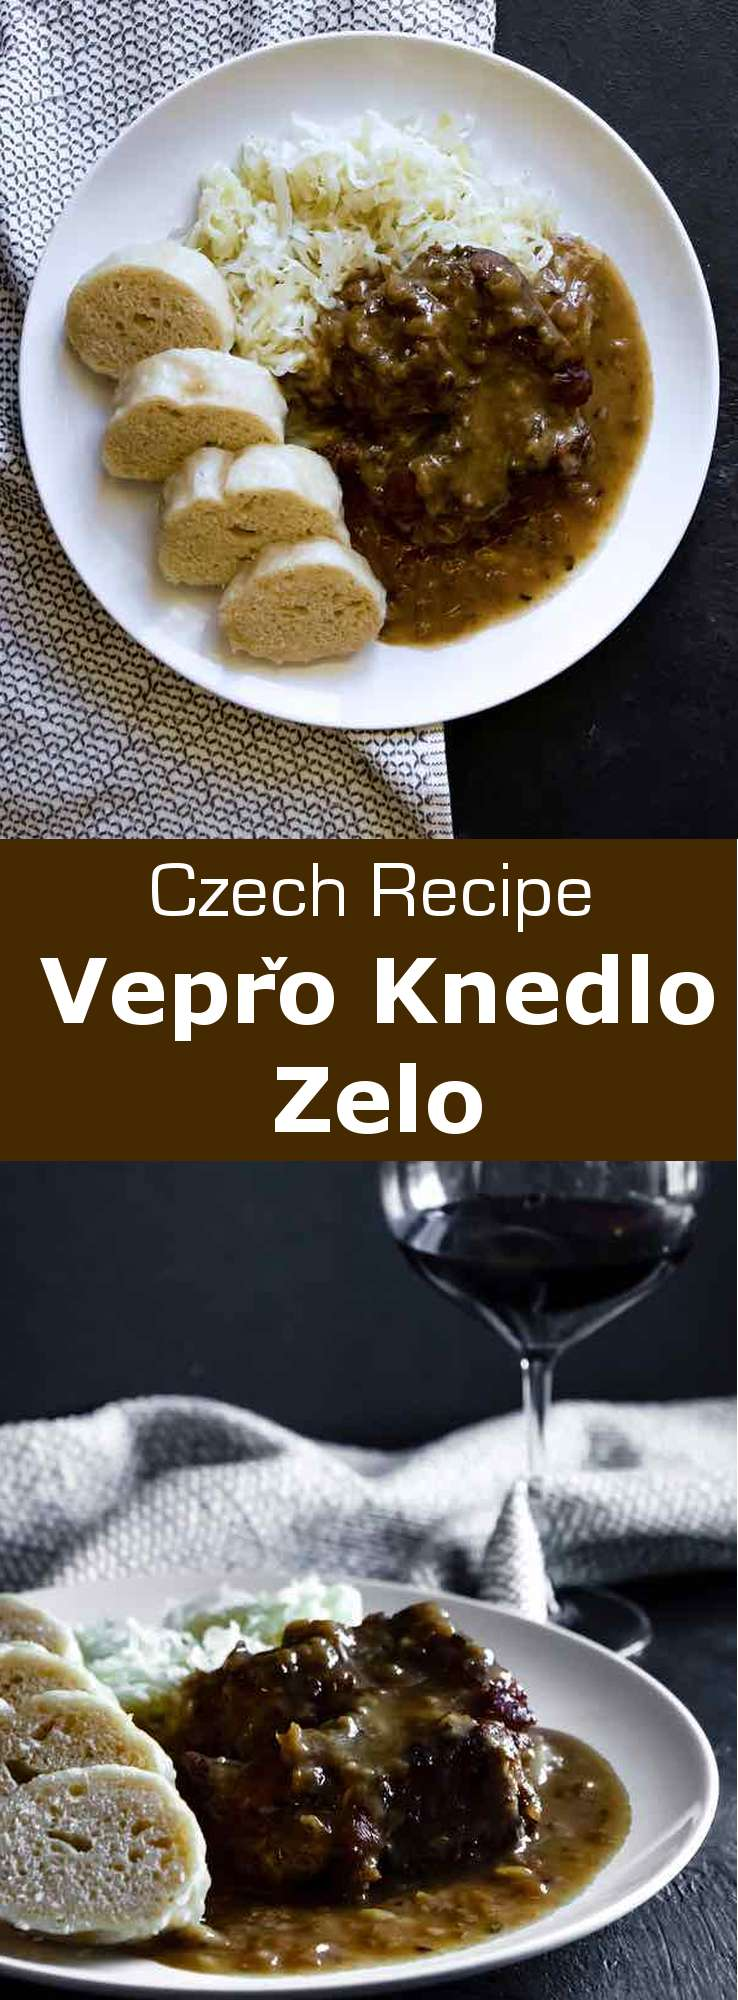 Vepřo knedlo zelo, short for roast pork (vepřová), bread dumplings (knedlíky) and sauerkraut (zelí) is one of the most classic and traditional Czech dishes. #CzechRepublic #CzechCuisine #CzechRecipe #CzechRoast #CzechDumpling #Sauerkraut #WorldCuisine #196flavors